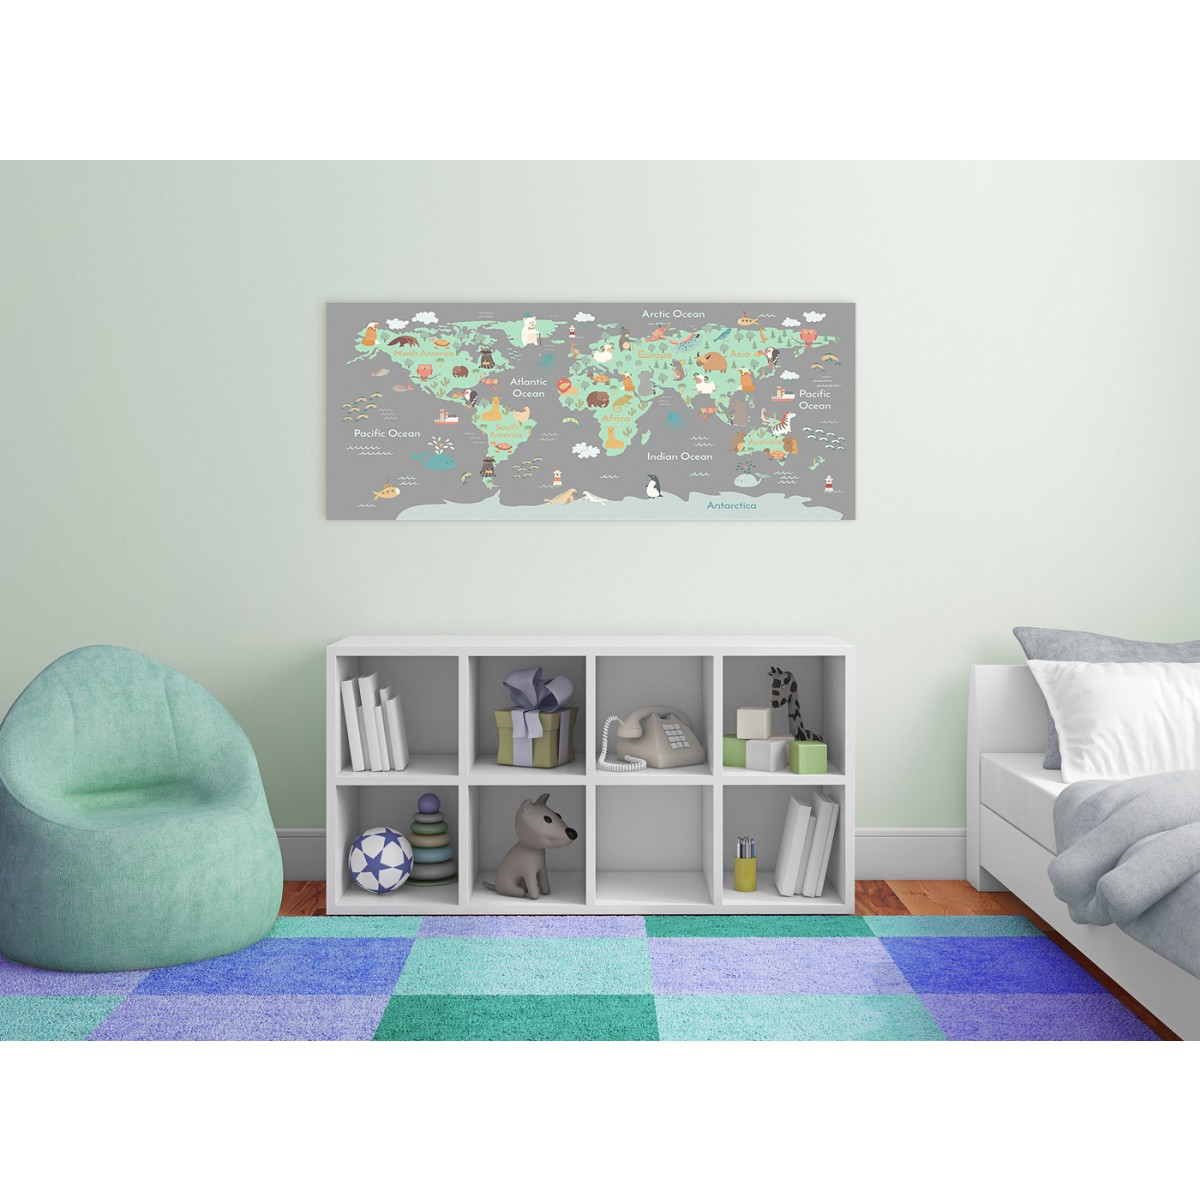 100 cm wide sofa bed set cleaning in bangalore animal map of world atlas canvas art for childrens bedroom ...